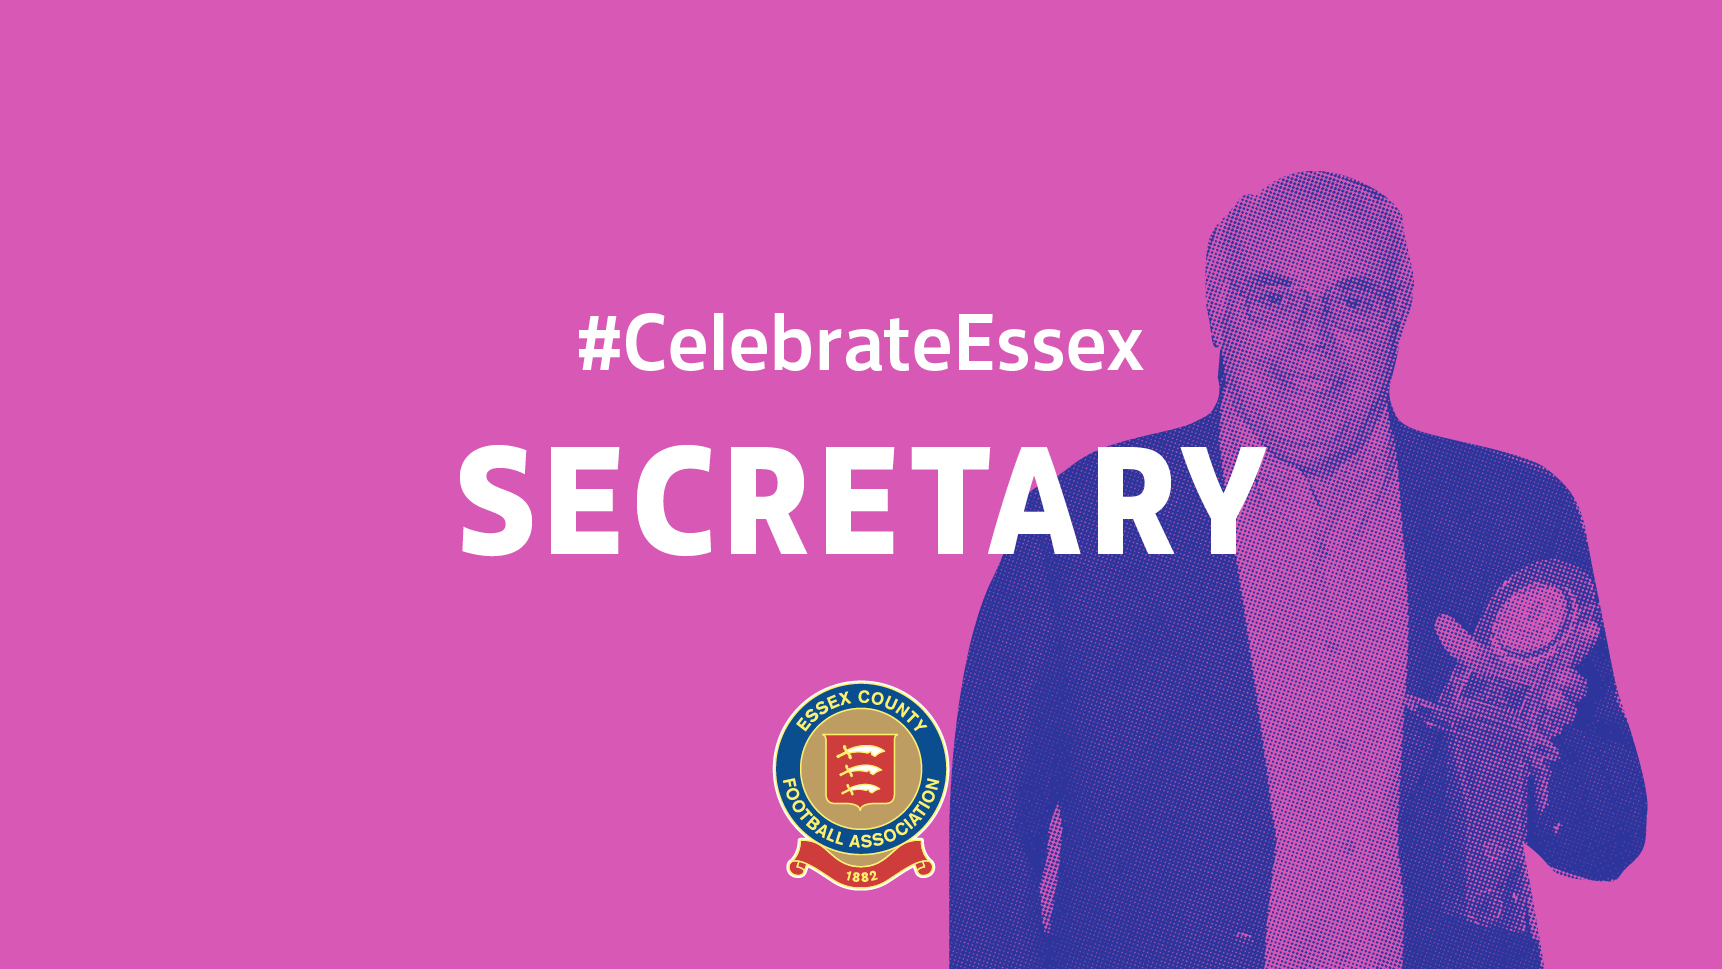 #CelebrateEssex Secretary